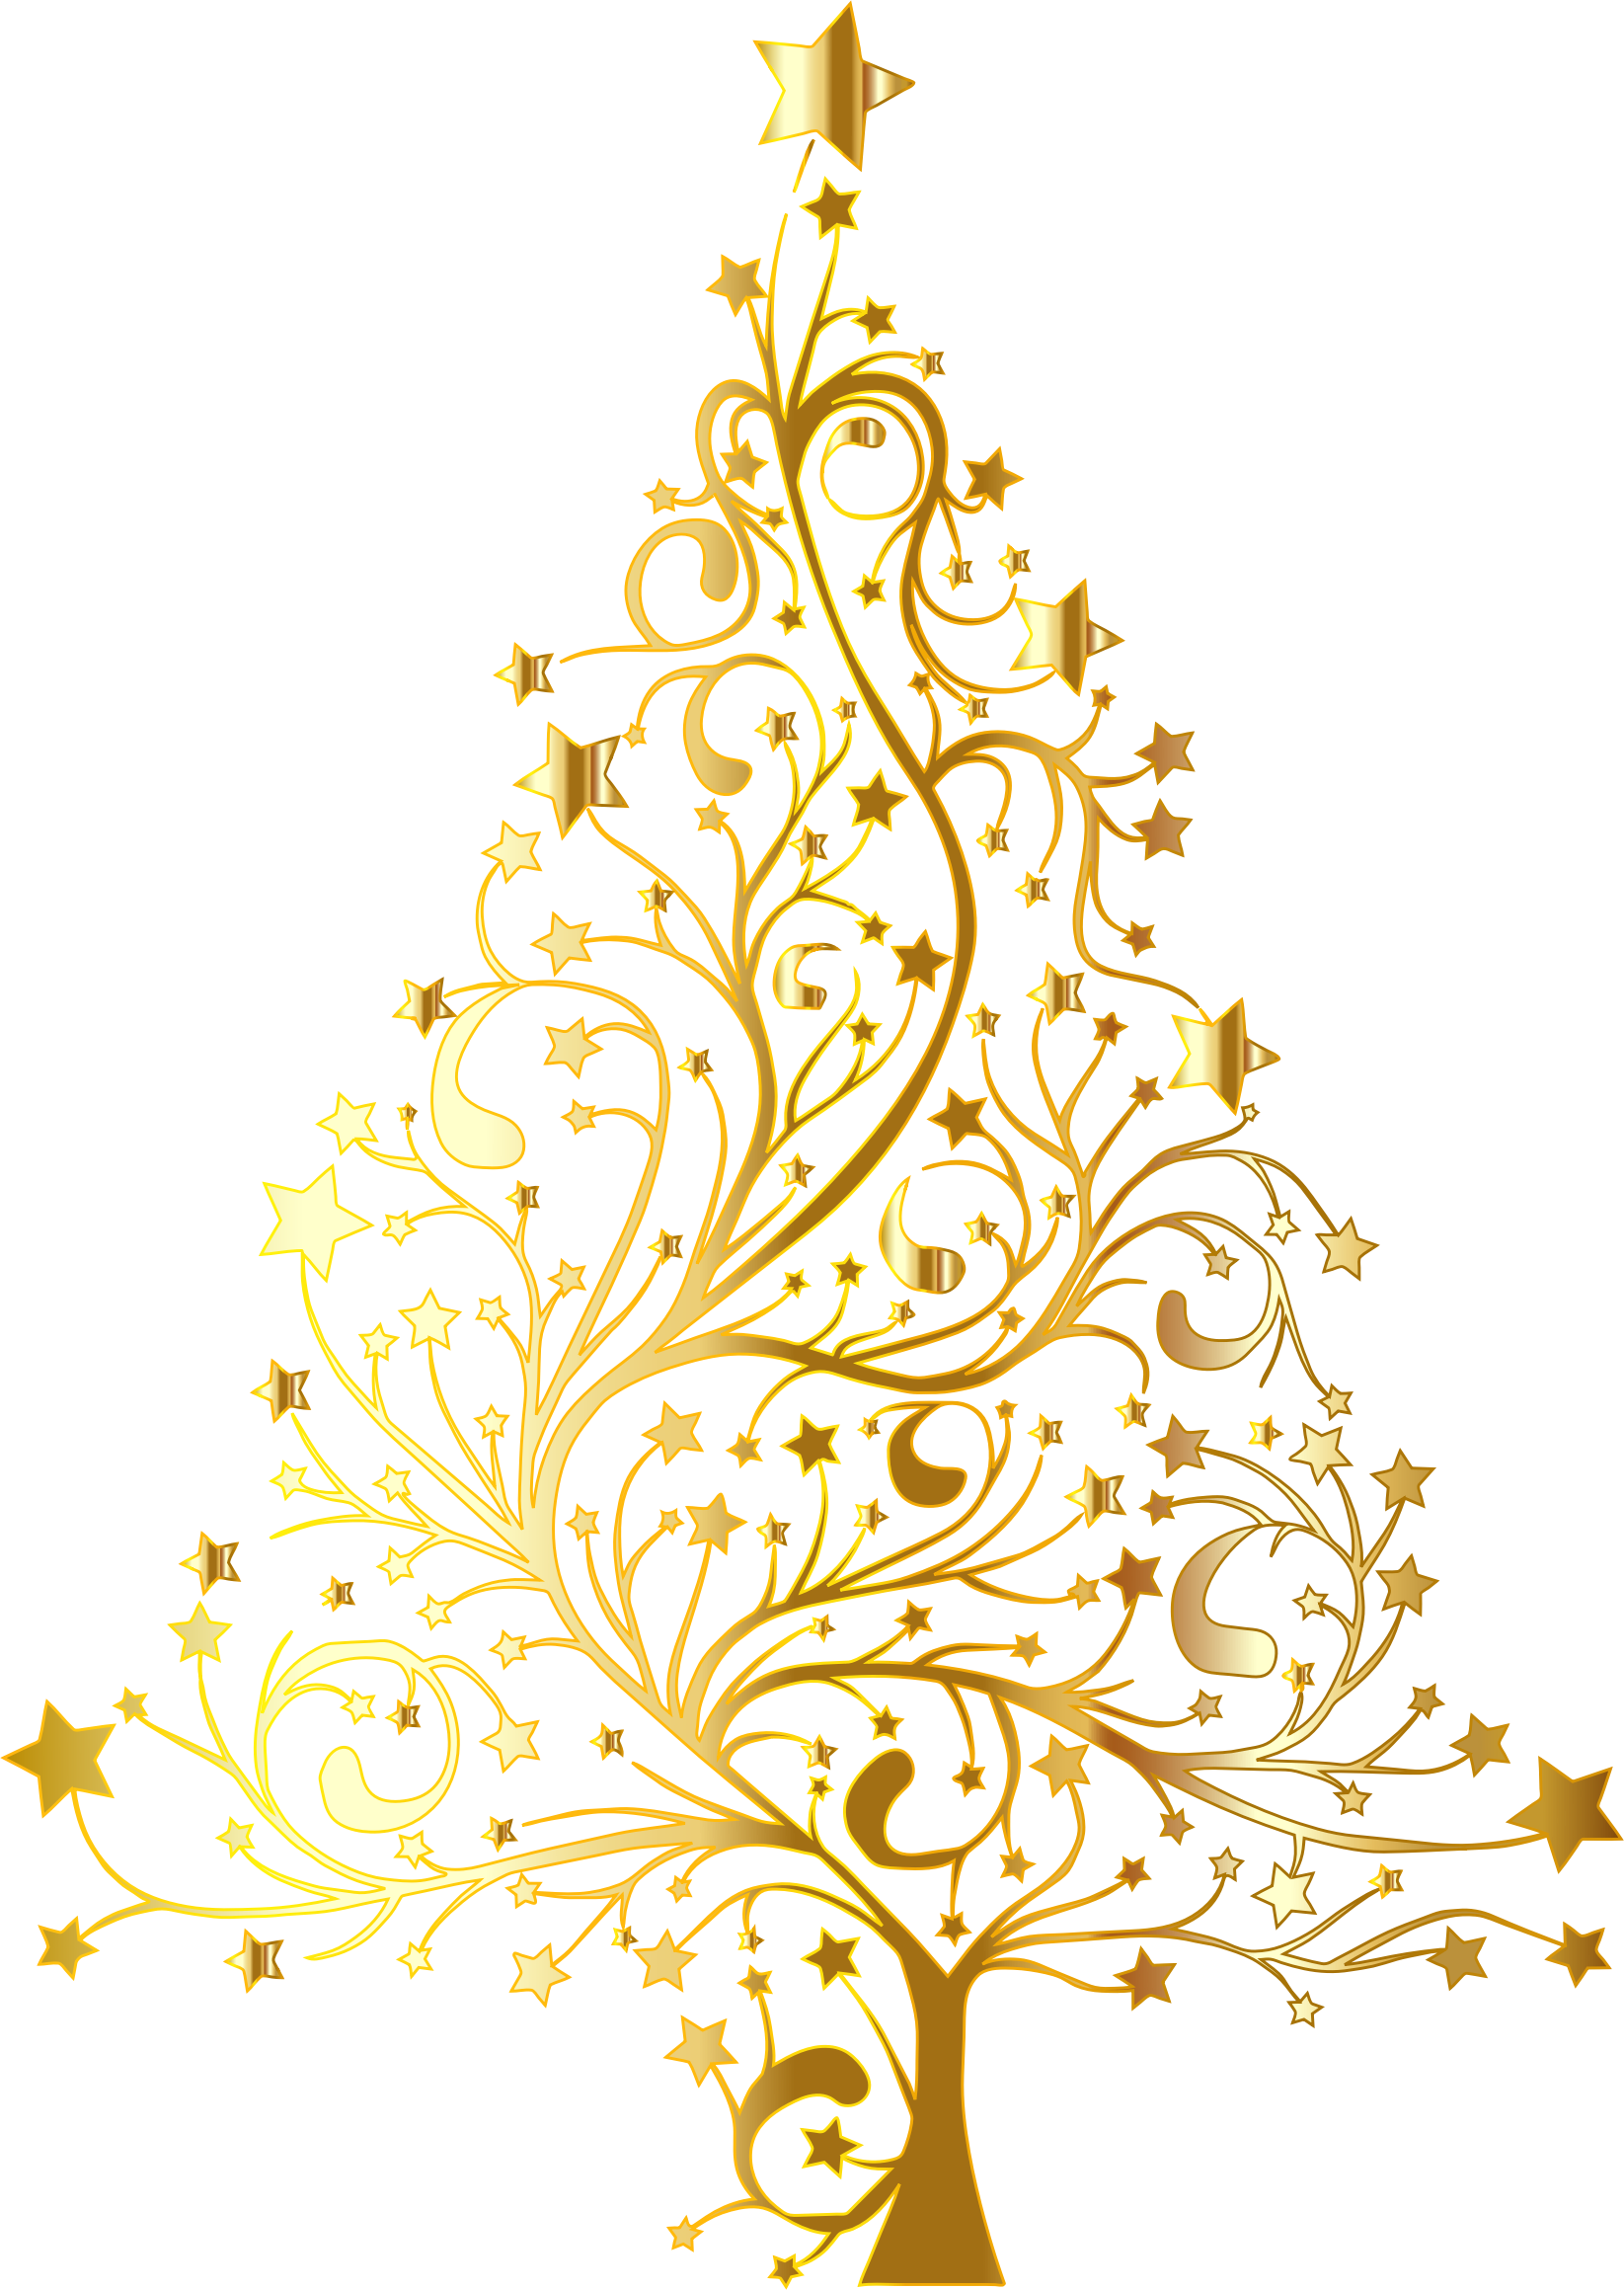 Sparkle clipart xmas, Sparkle xmas Transparent FREE for.